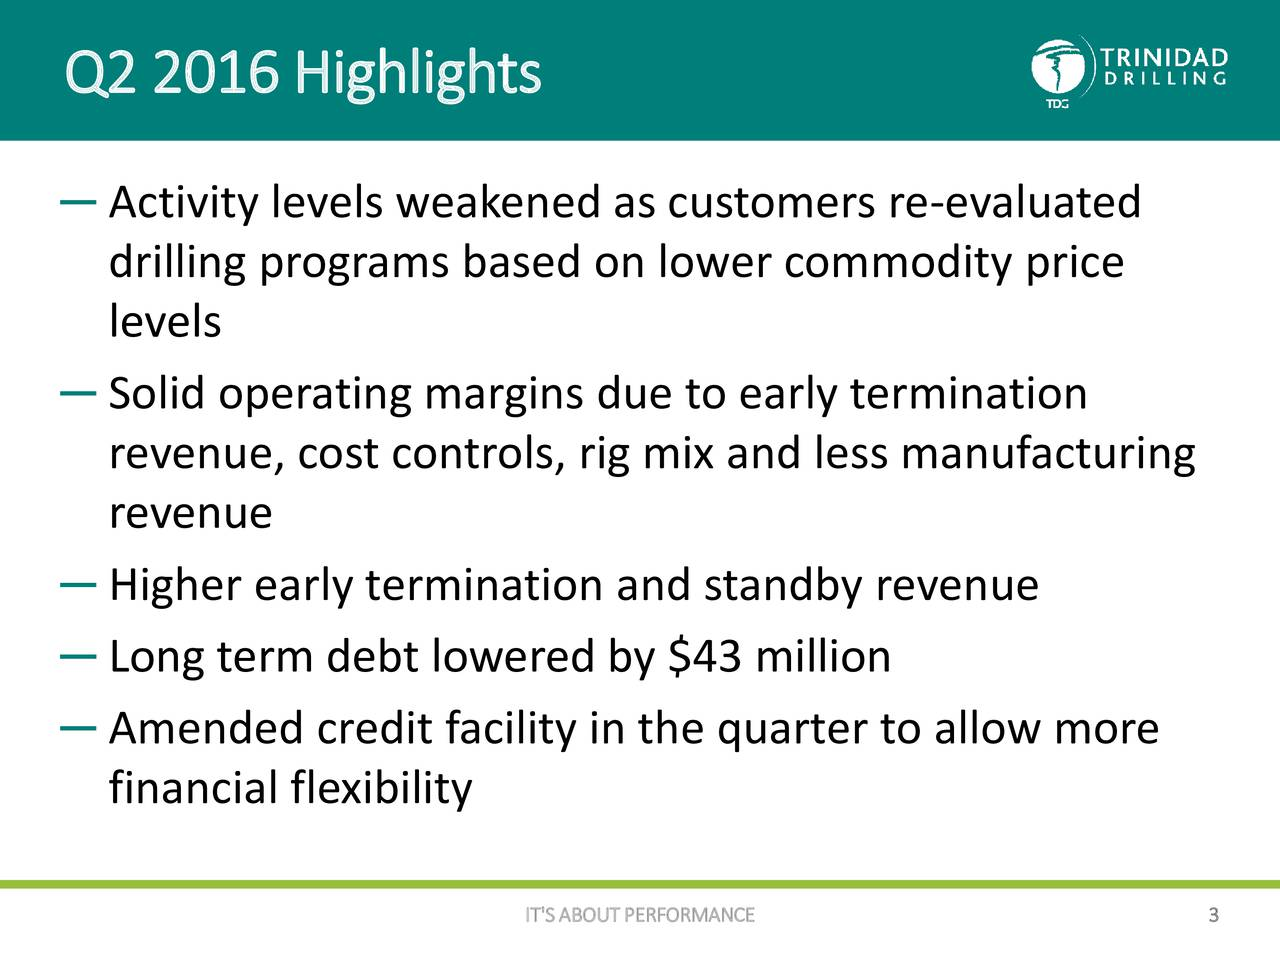 Activity levels weakened as customers re-evaluated drilling programs based on lower commodity price levels Solid operating margins due to early termination revenue, cost controls, rig mix and less manufacturing revenue Higher early termination and standby revenue Long term debt lowered by $43 million Amended credit facility in the quarter to allow more financial flexibility IT'S ABOUT PERFORMANCE 3